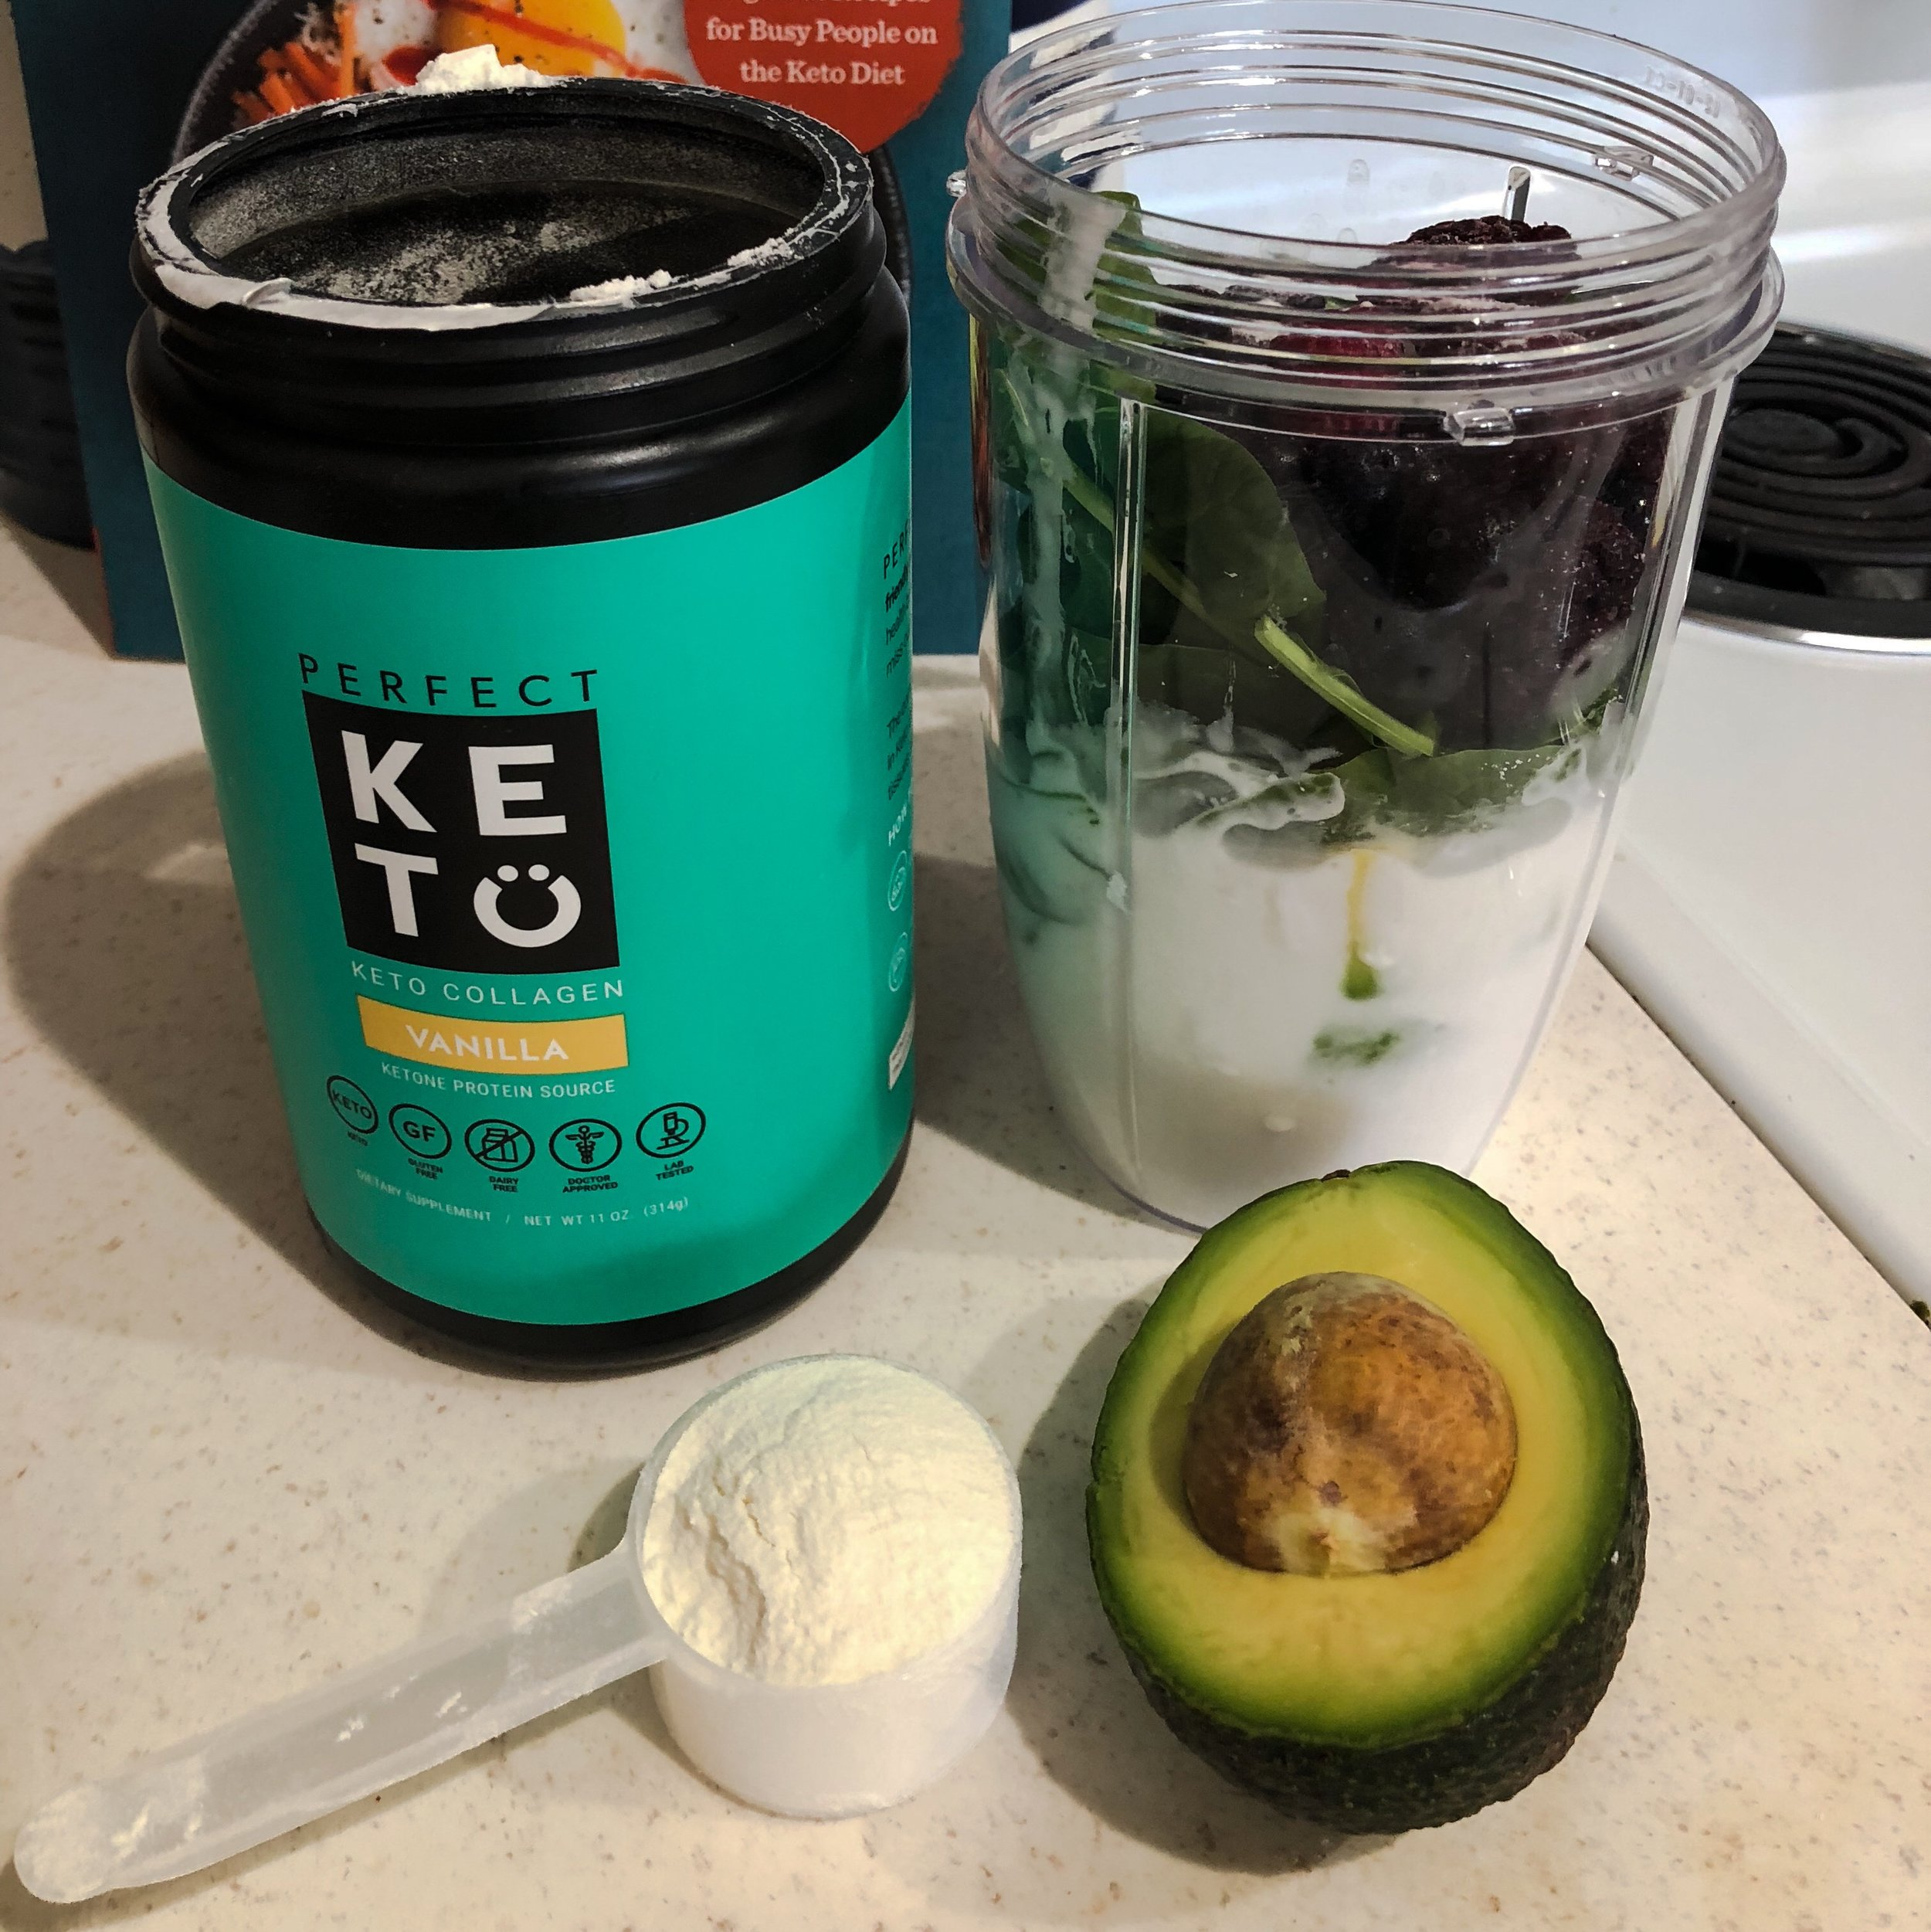 Keto in the city perfect keto smoothie